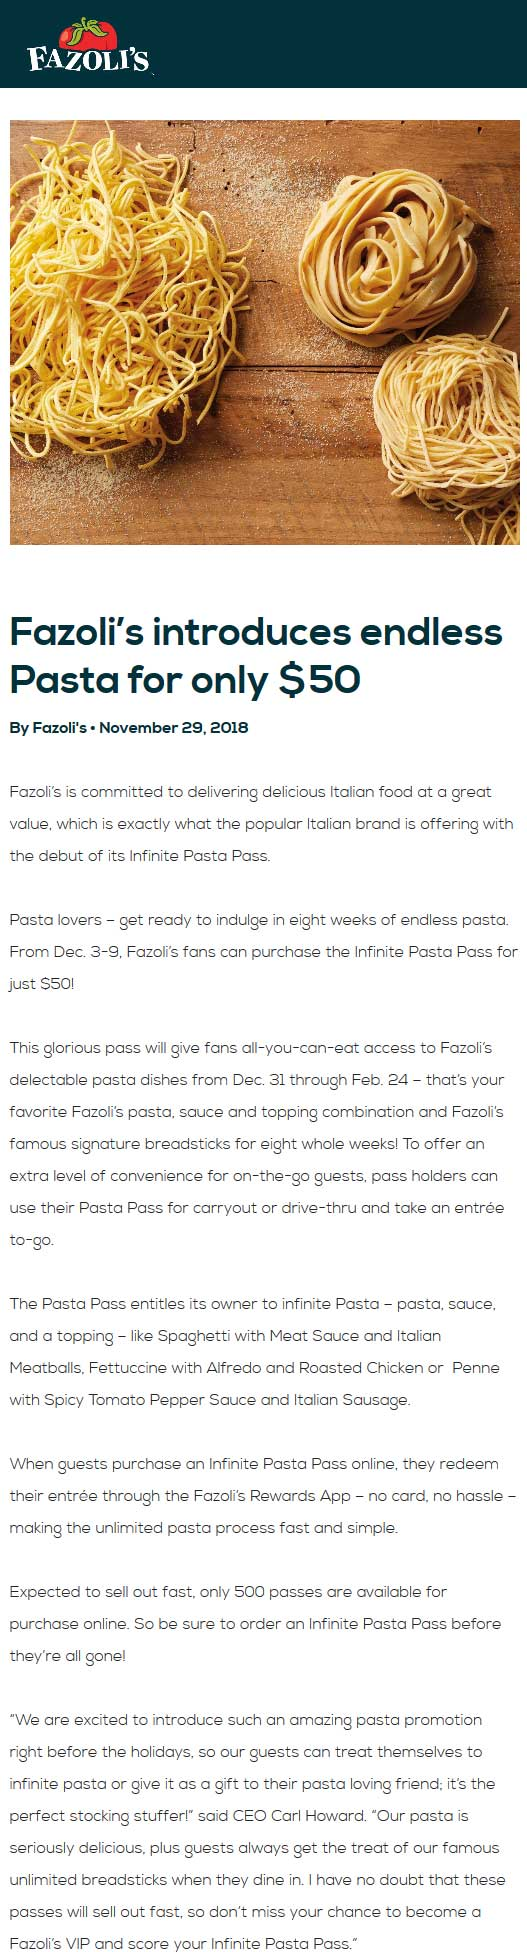 Fazolis.com Promo Coupon Infinite pasta pass for 8wks = $50 at Fazolis restaurants